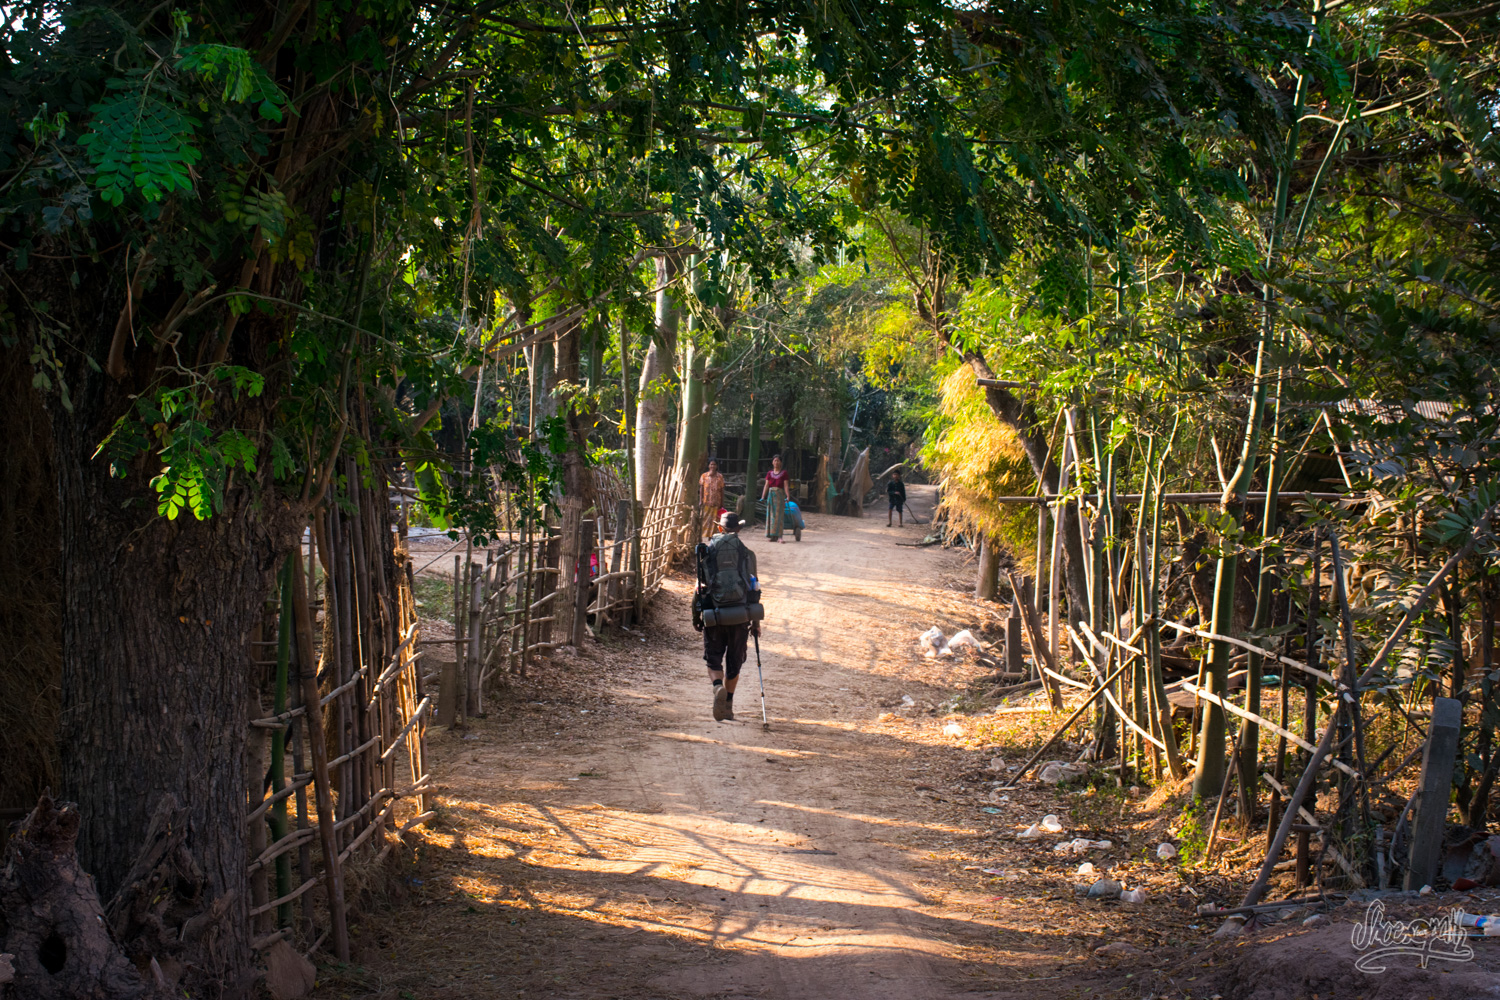 Quentin, early morning on our little track along the Mekong